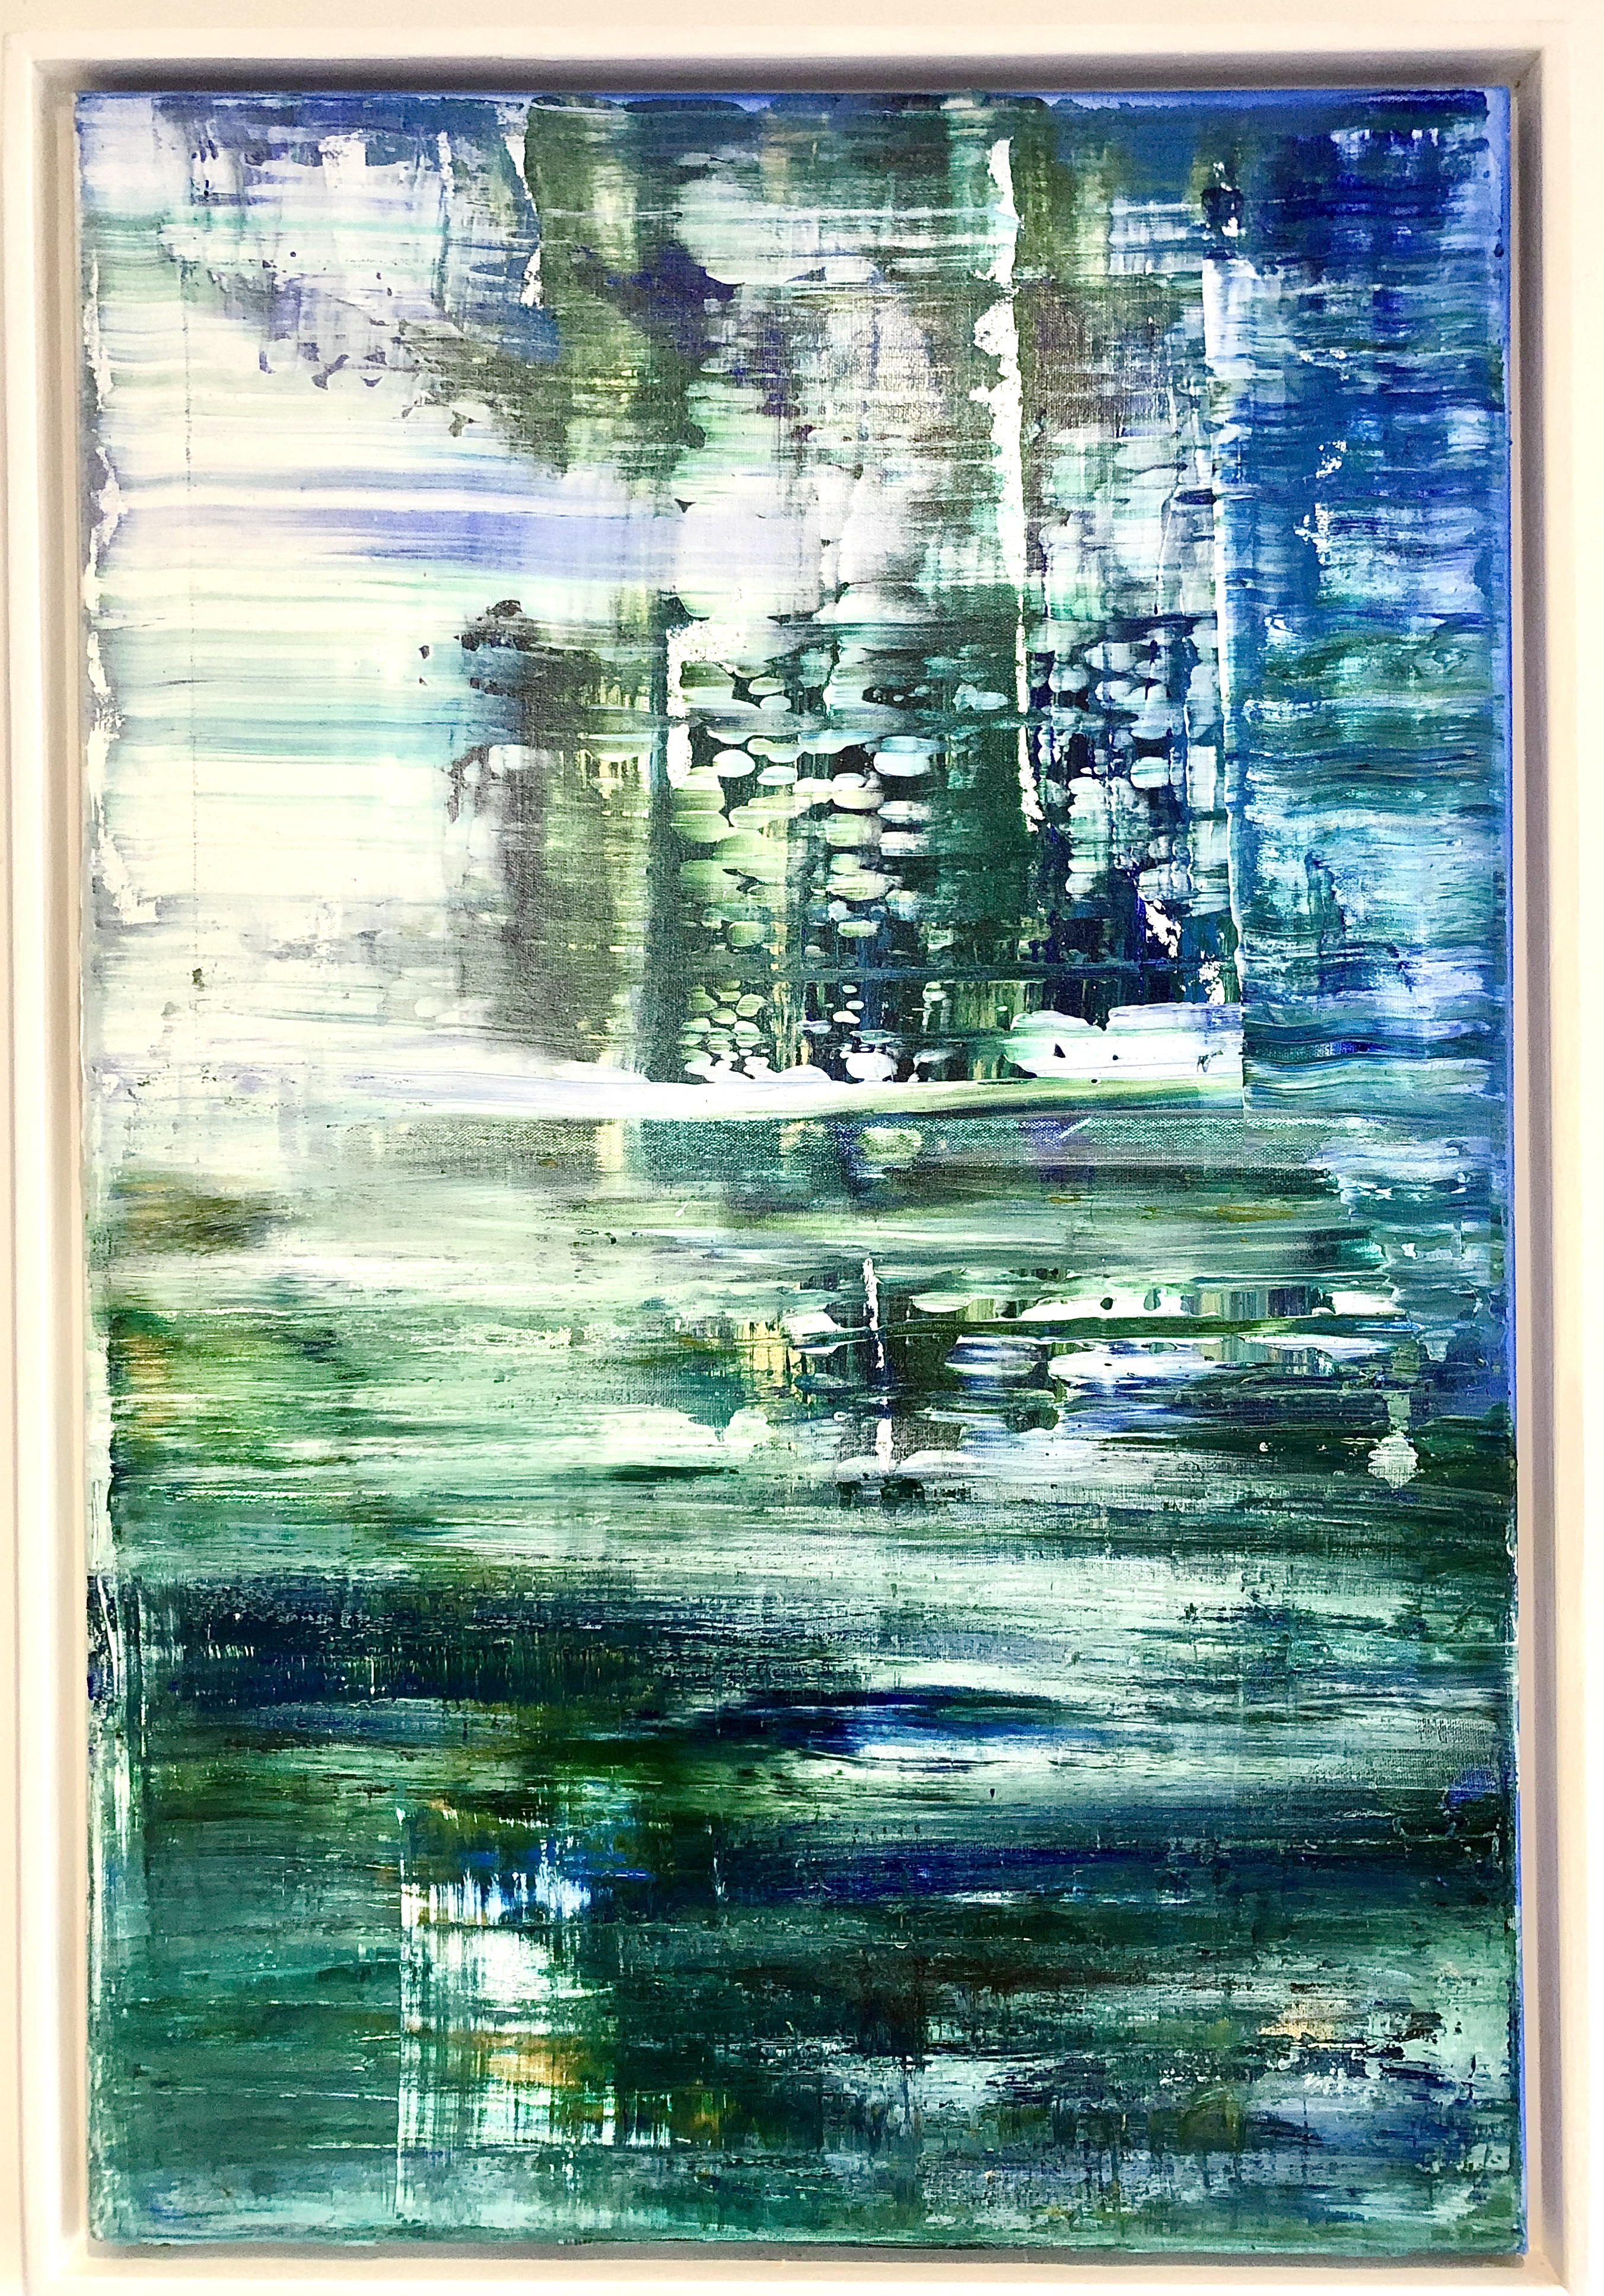 """""""Abstract blue and green light"""". This is an original acrylic on canvas by Catherine Kennedy Width 51cm Height 76cm or 20ins x 30ins. Framed in a whitewashed wooden frame finished with beeswax. Signed. Comes with a certificate of authenticity. #artistsupportpledg"""